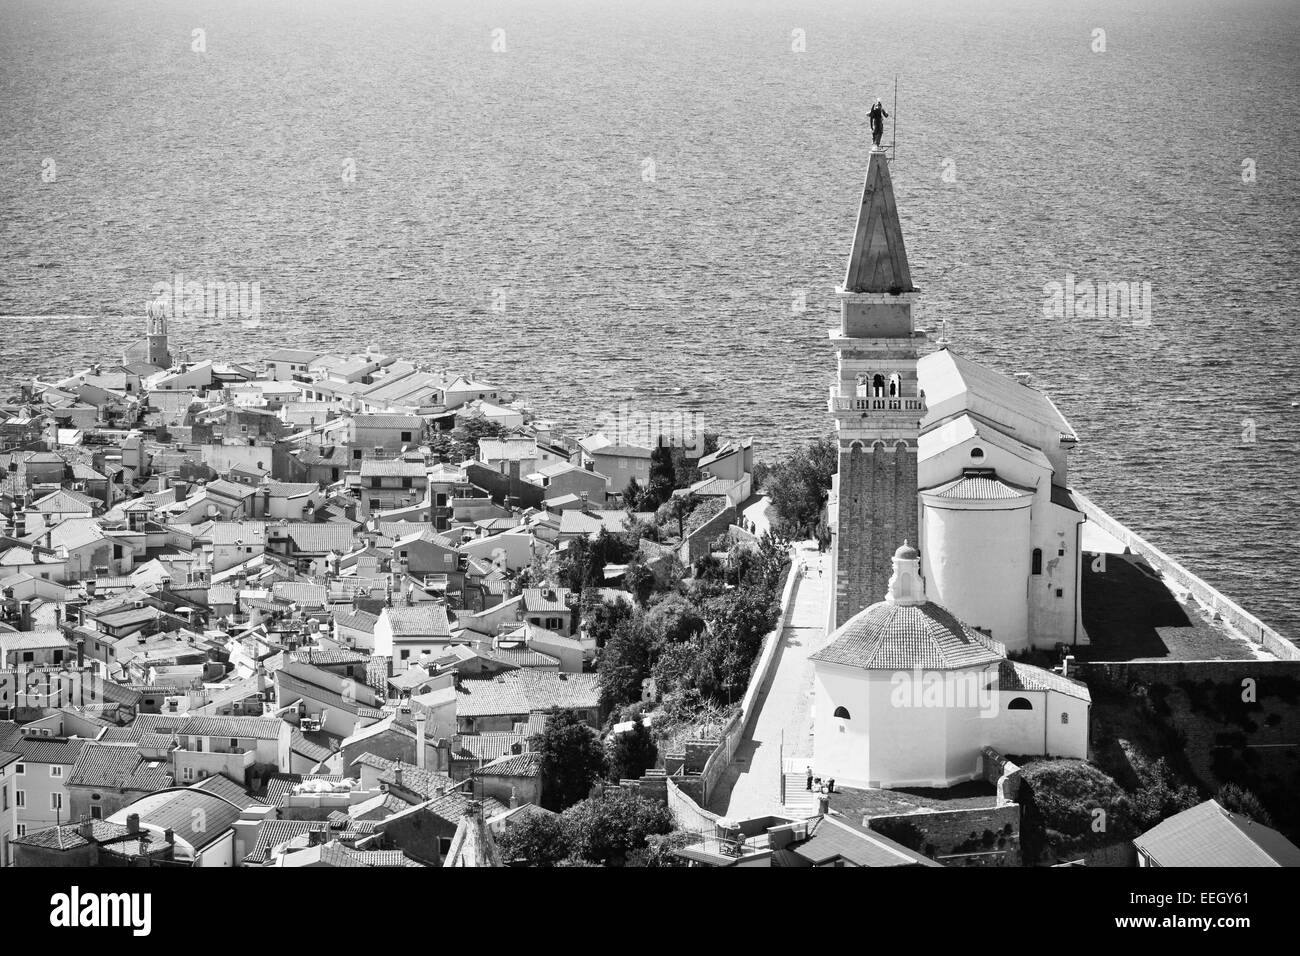 St. George's Parish Church in old town Piran - Slovenian - Stock Image